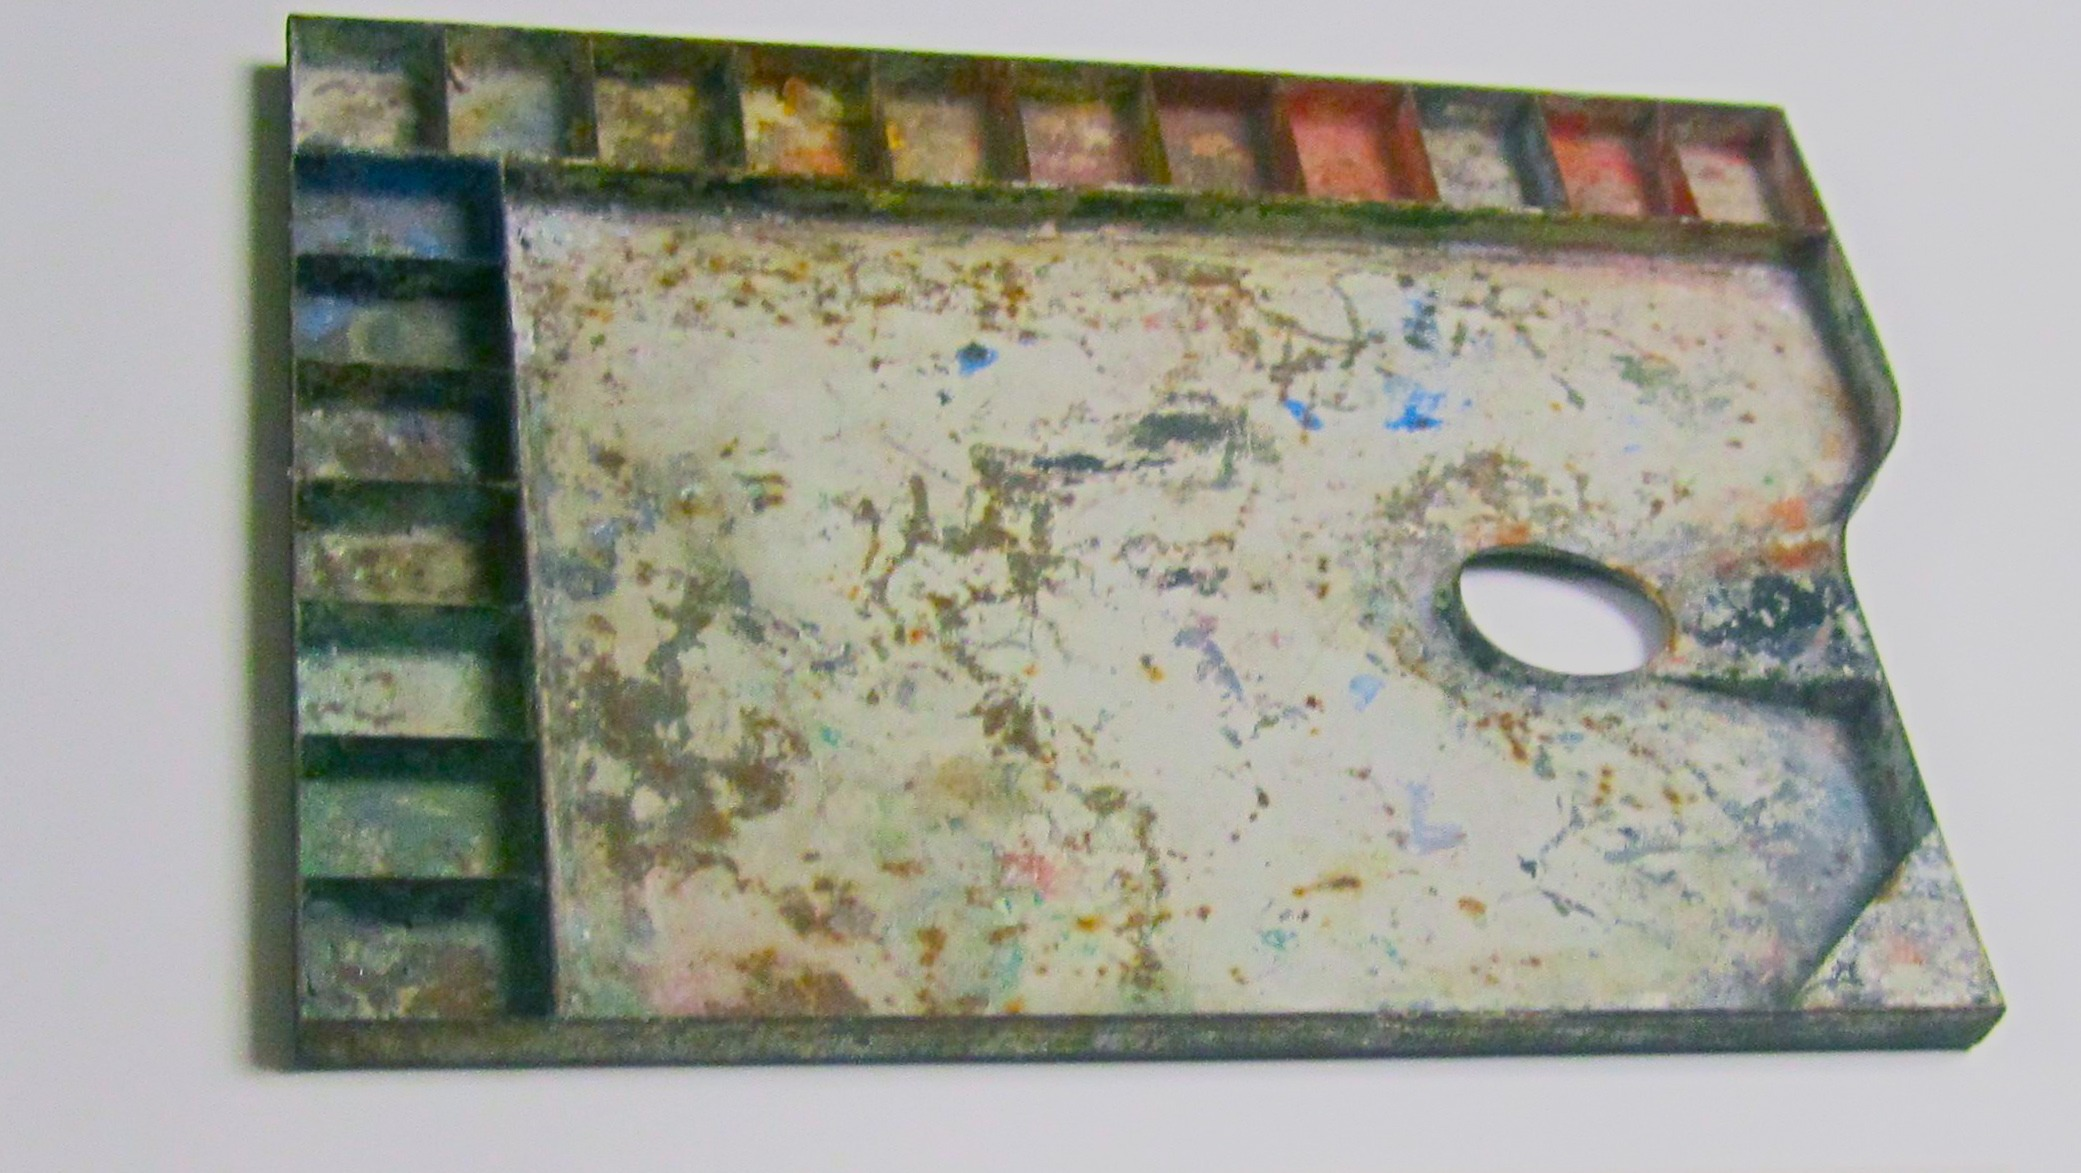 Franz Marc's palette, from the archives of the Franz Marc Museum, Kochel.